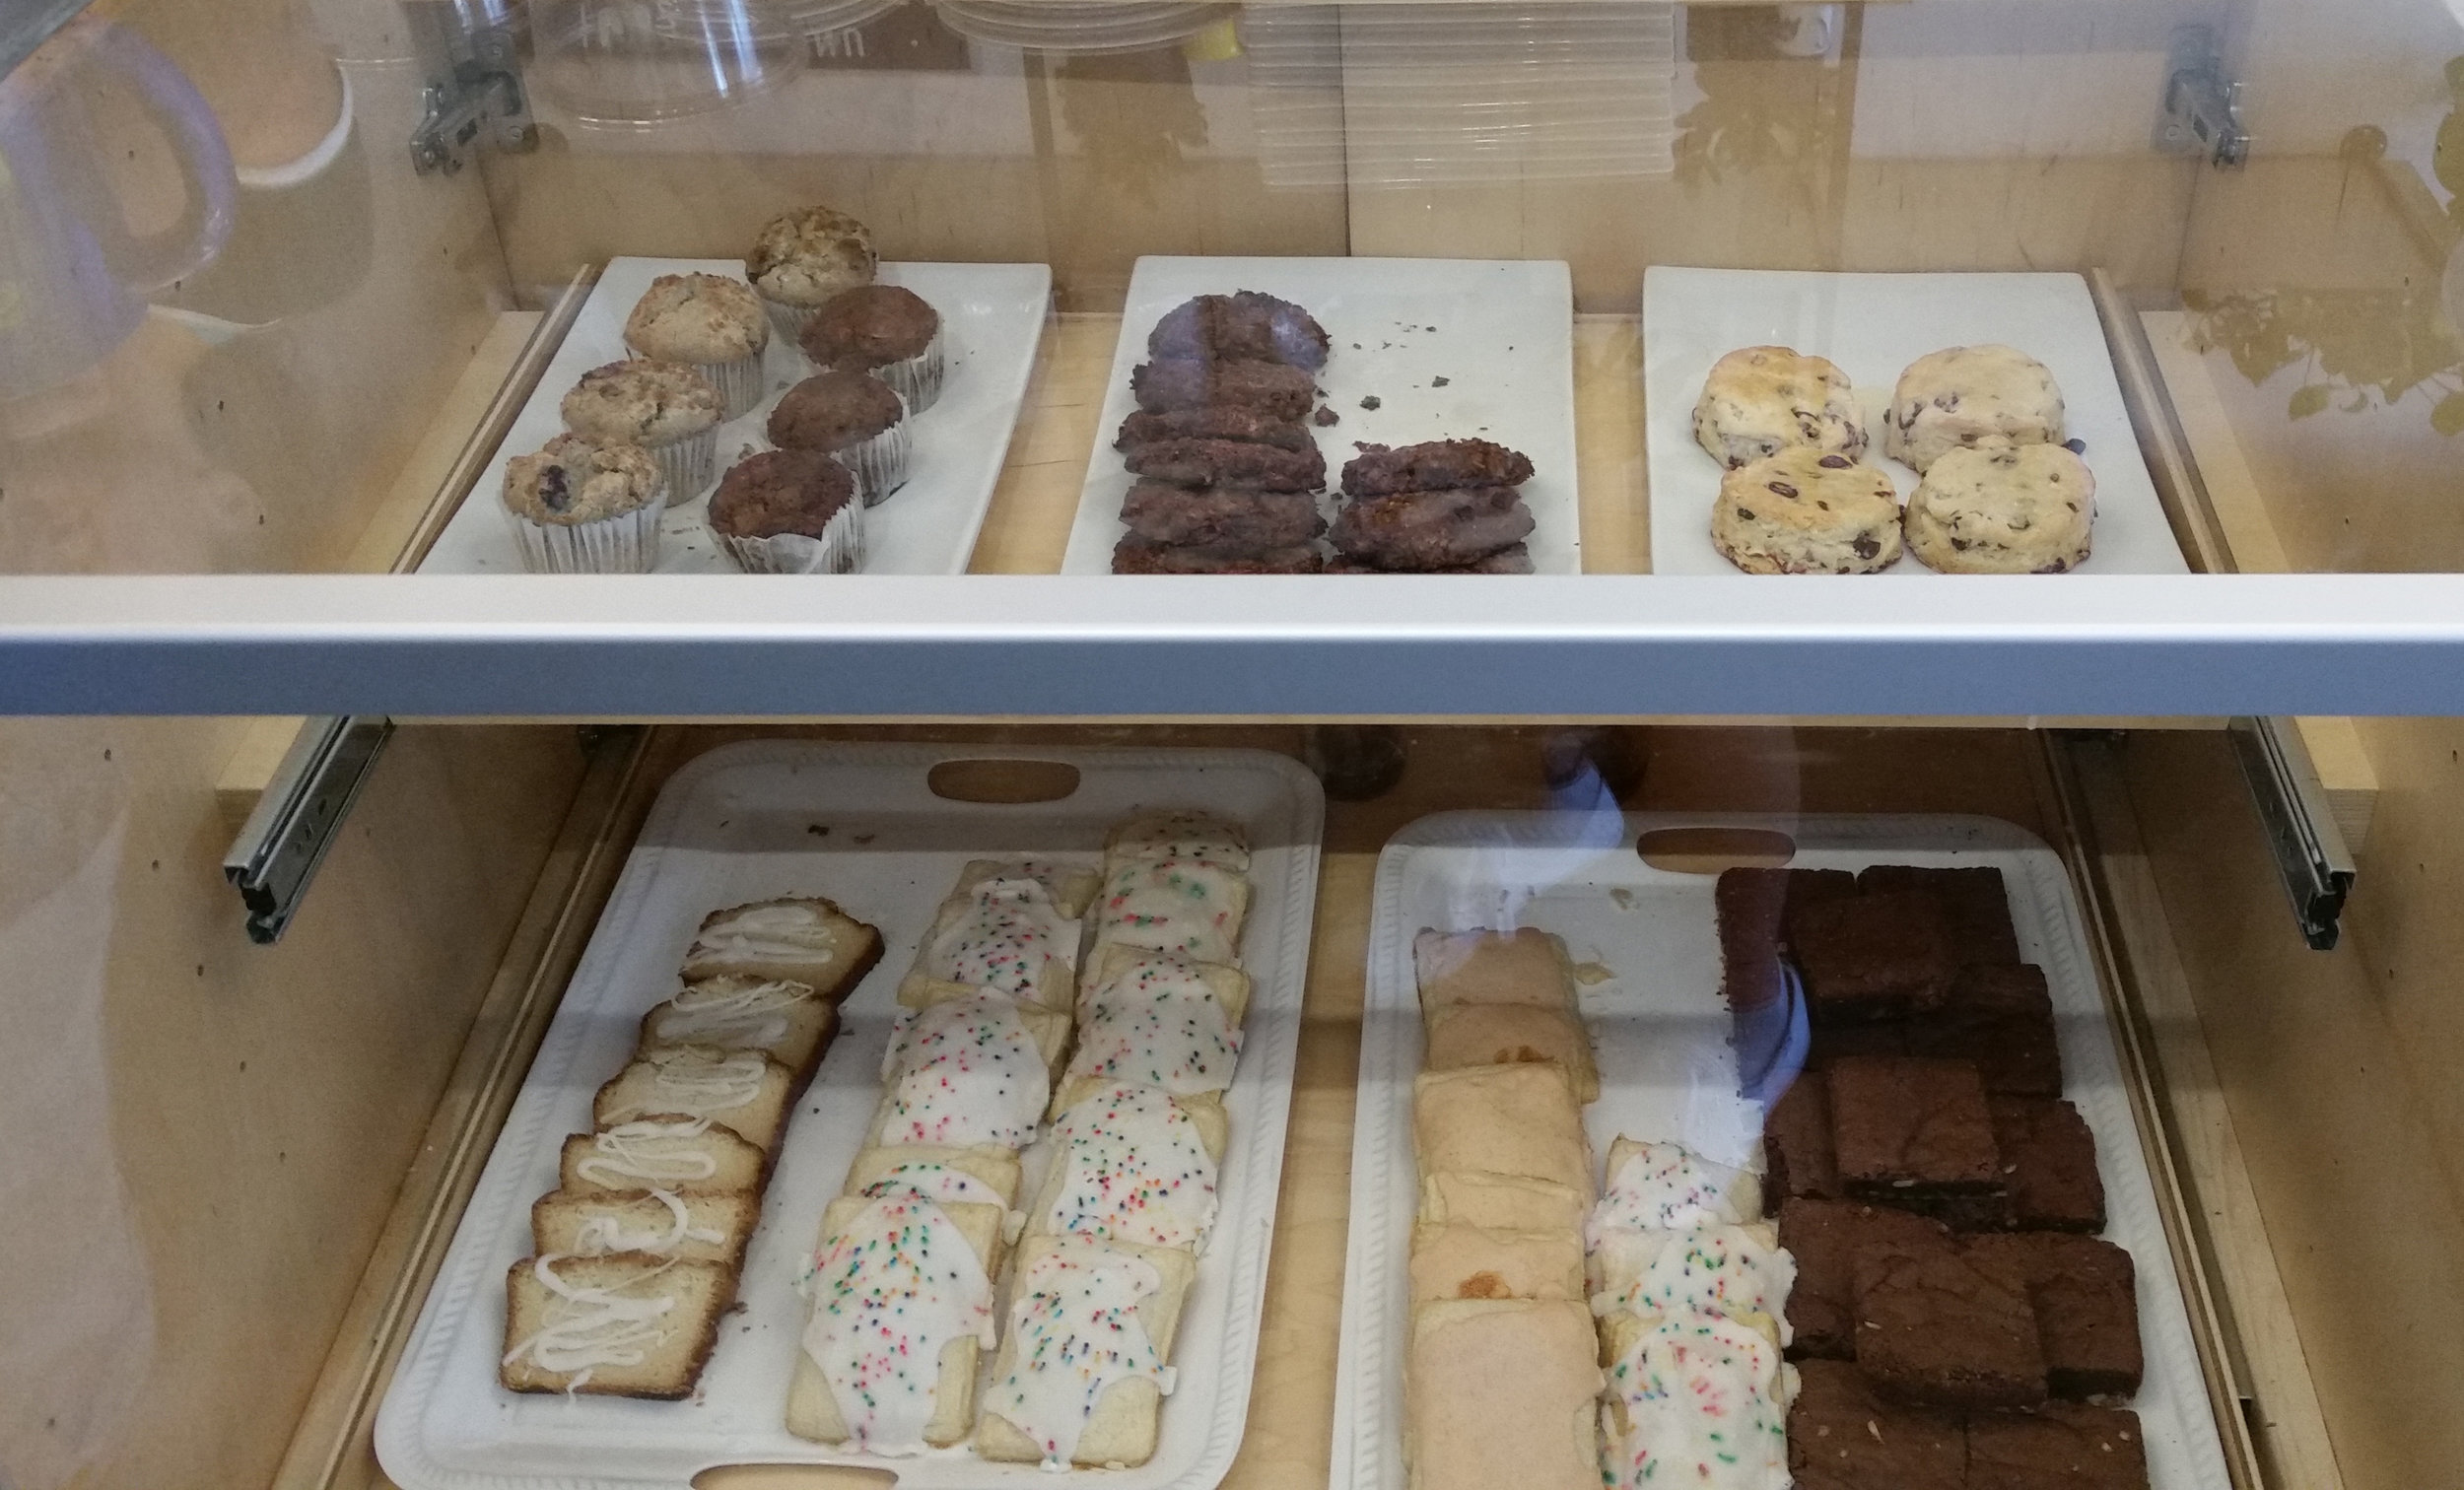 The pastry case at Honest Coffee Roasters in Huntsville includes some of your Mason Dixon favorites as well as some new items available only at Honest Coffee Roasters.